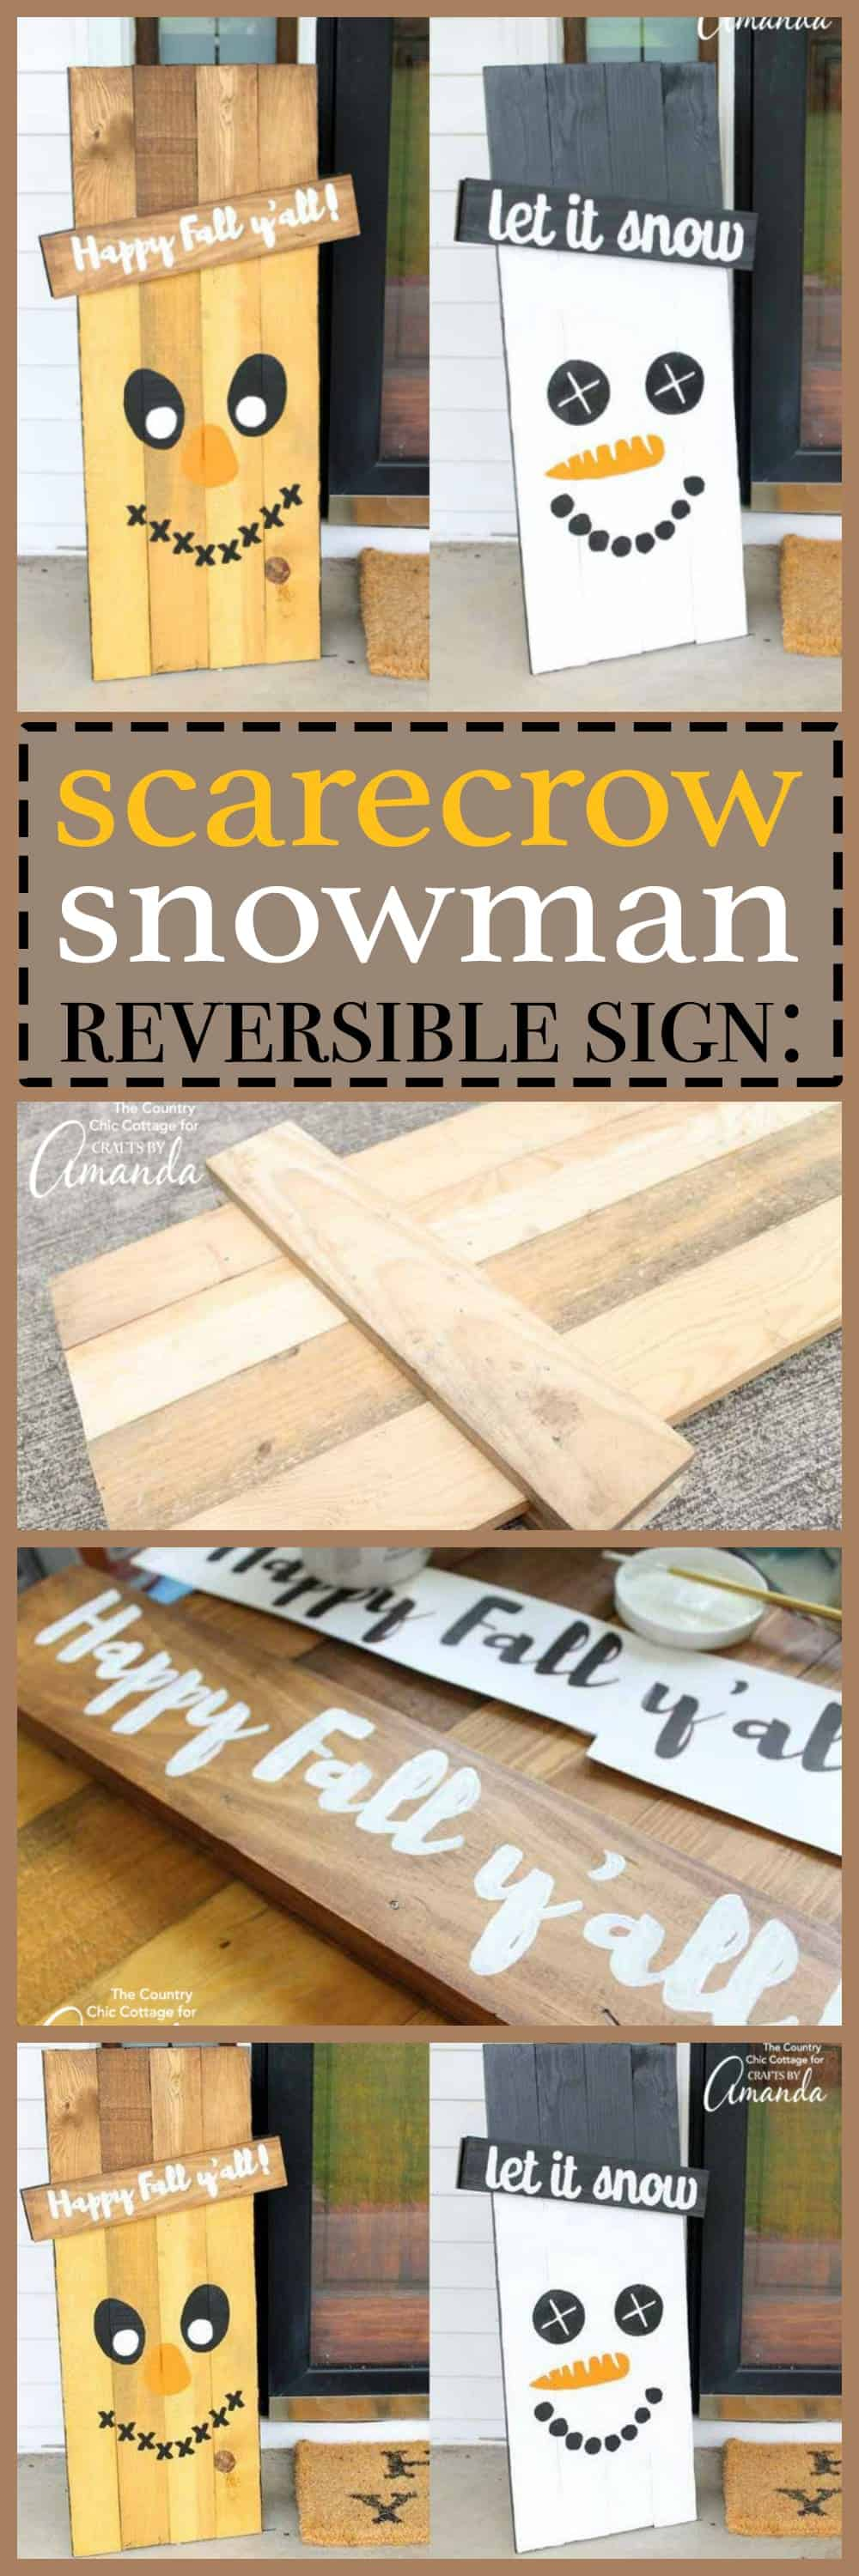 Reversible scarecrow snowman sign: it's actually much easier than it looks! Grab your supplies and get professional results with our simple tips and tricks.